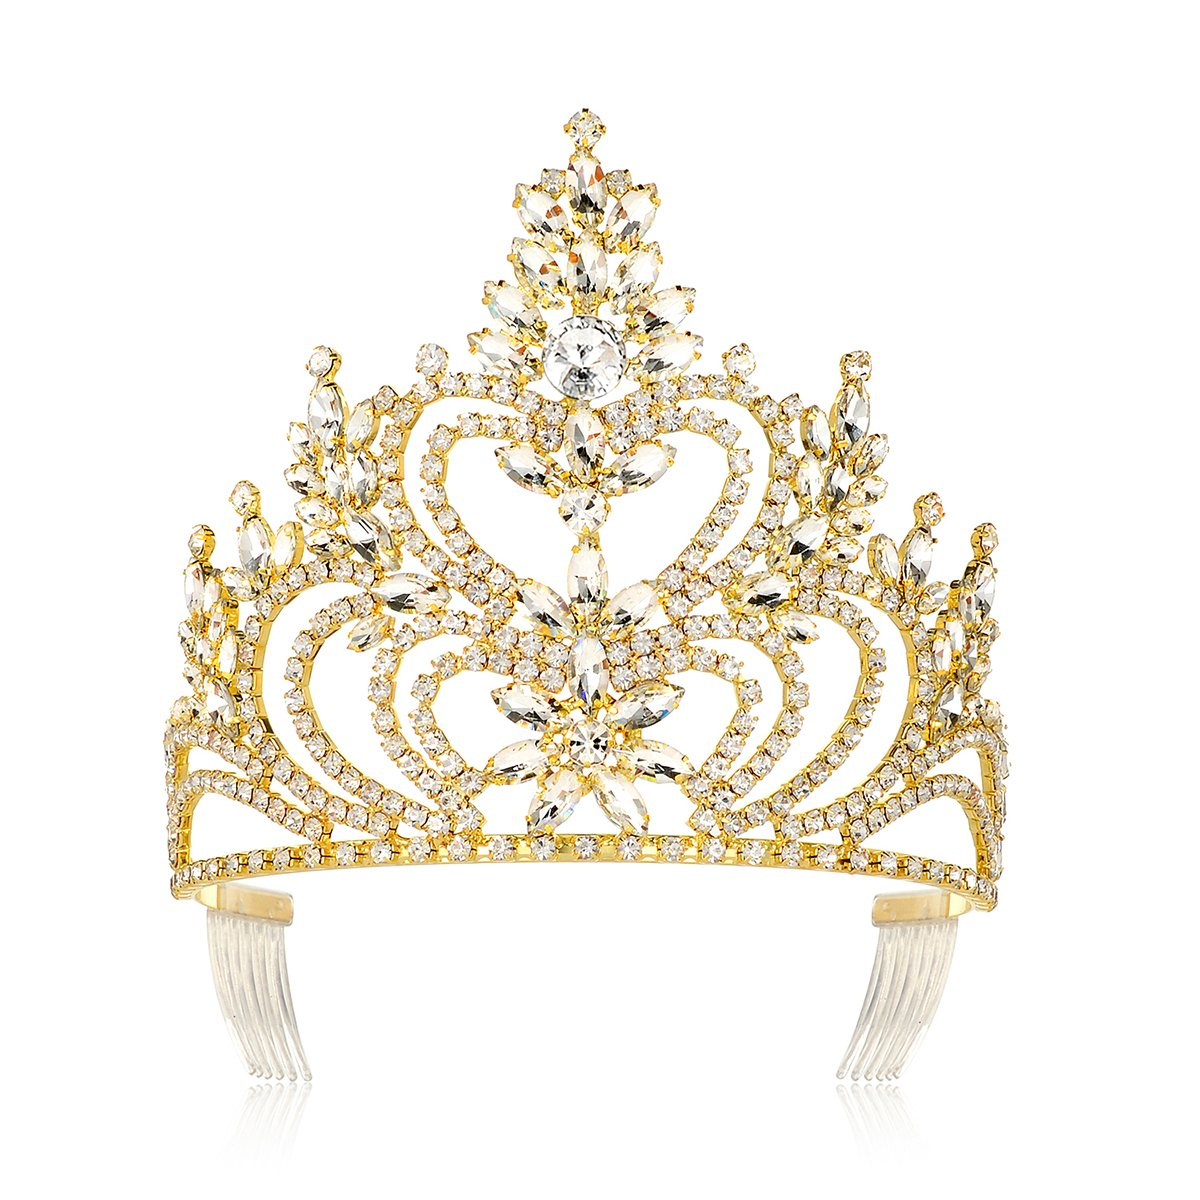 DcZeRong 5'' Tall Large Tiara Adult Women Birthday Pageant Prom Queen Gold Crystal Rhinestone Crown by DcZeRong (Image #1)